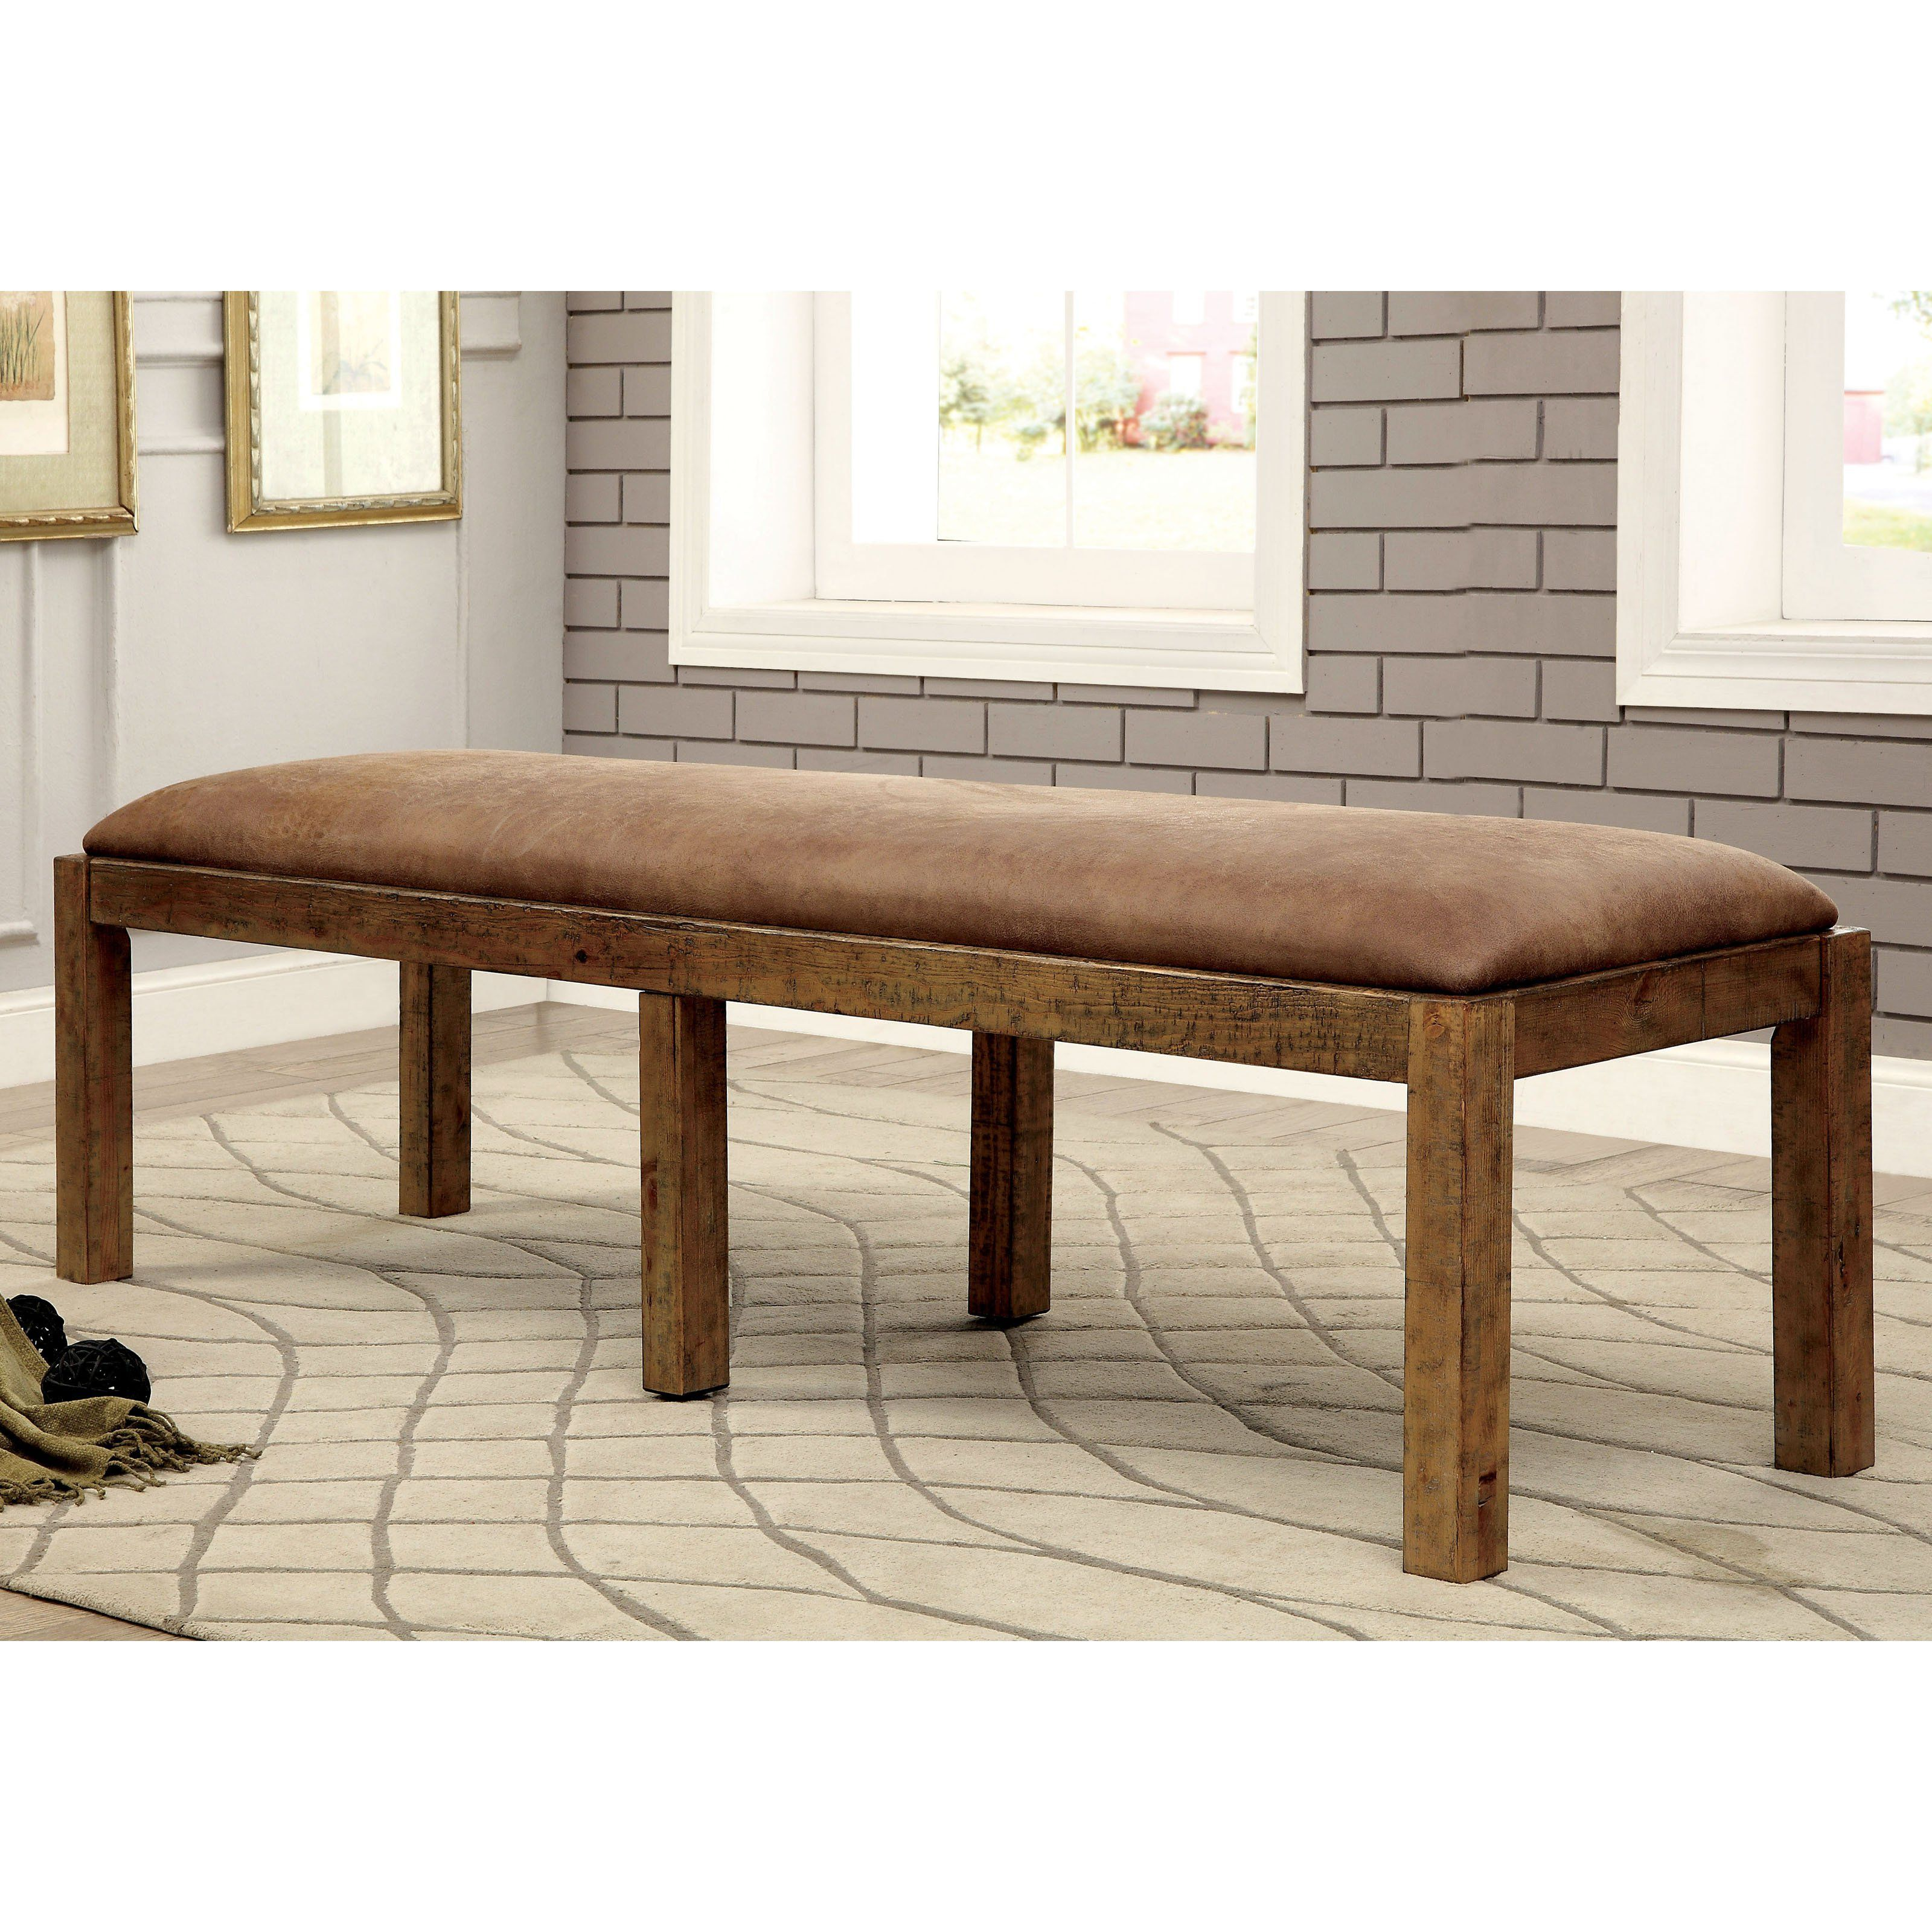 Terrific Furniture Of America Camen Dining Bench From Hayneedle Com Dailytribune Chair Design For Home Dailytribuneorg